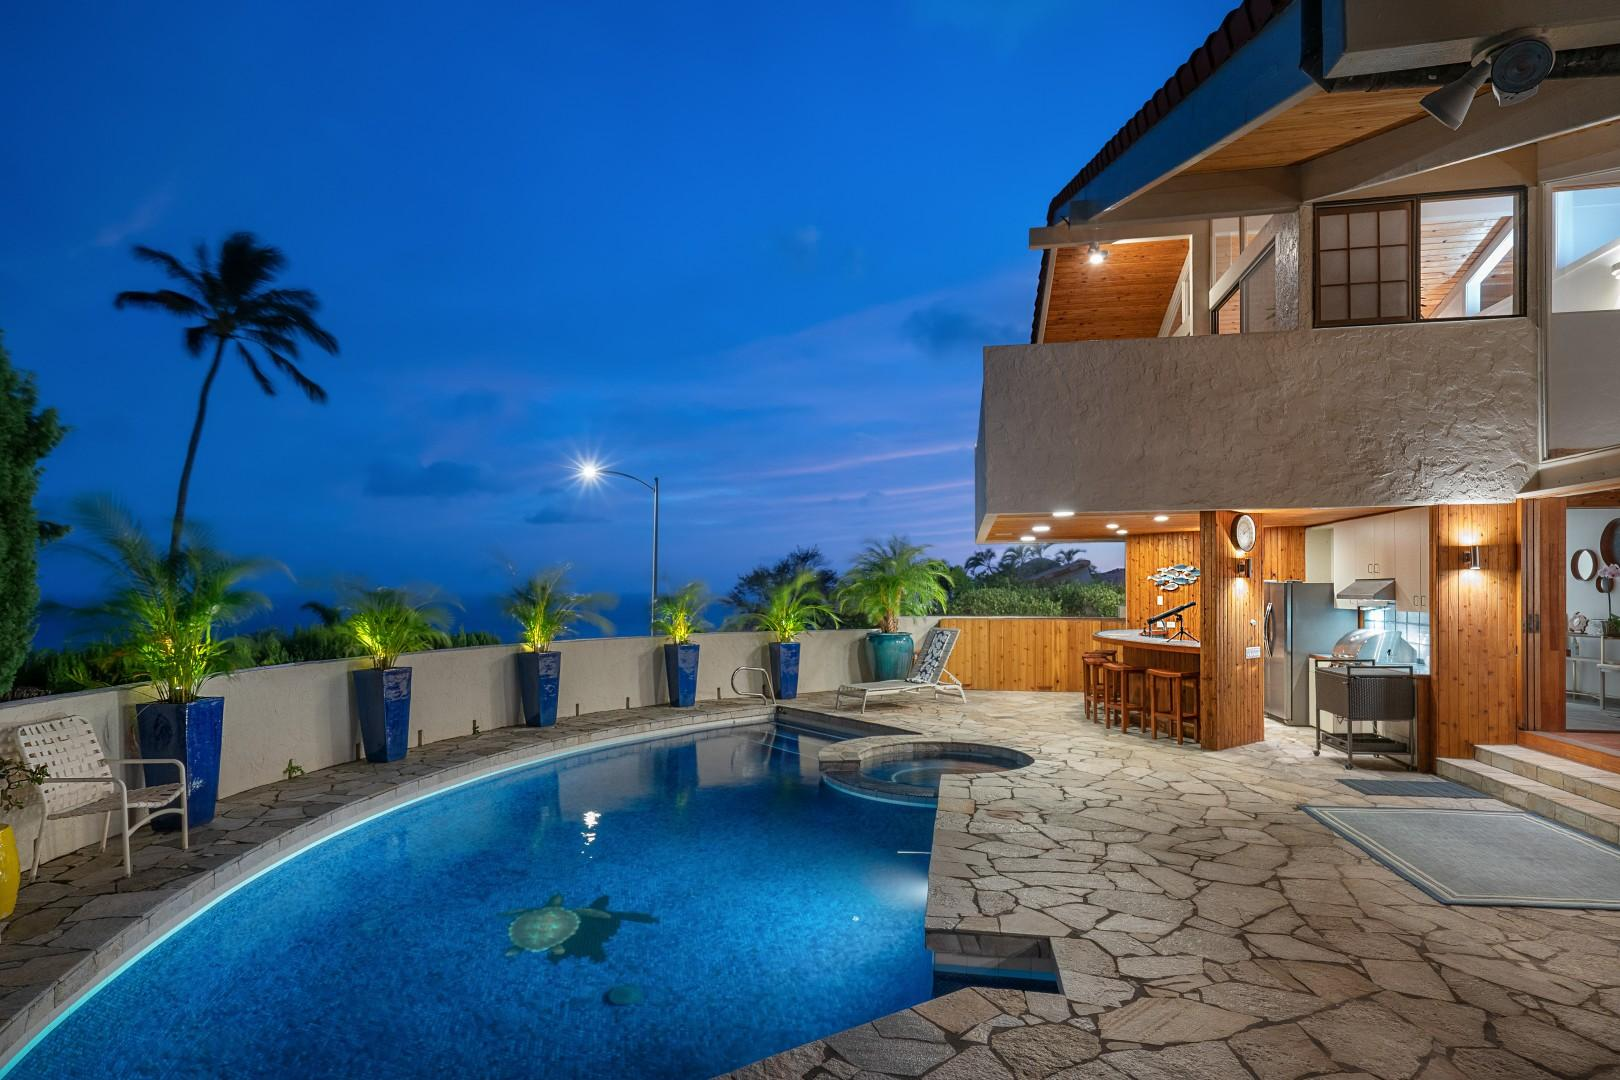 Watch the moonrise from the pool deck.